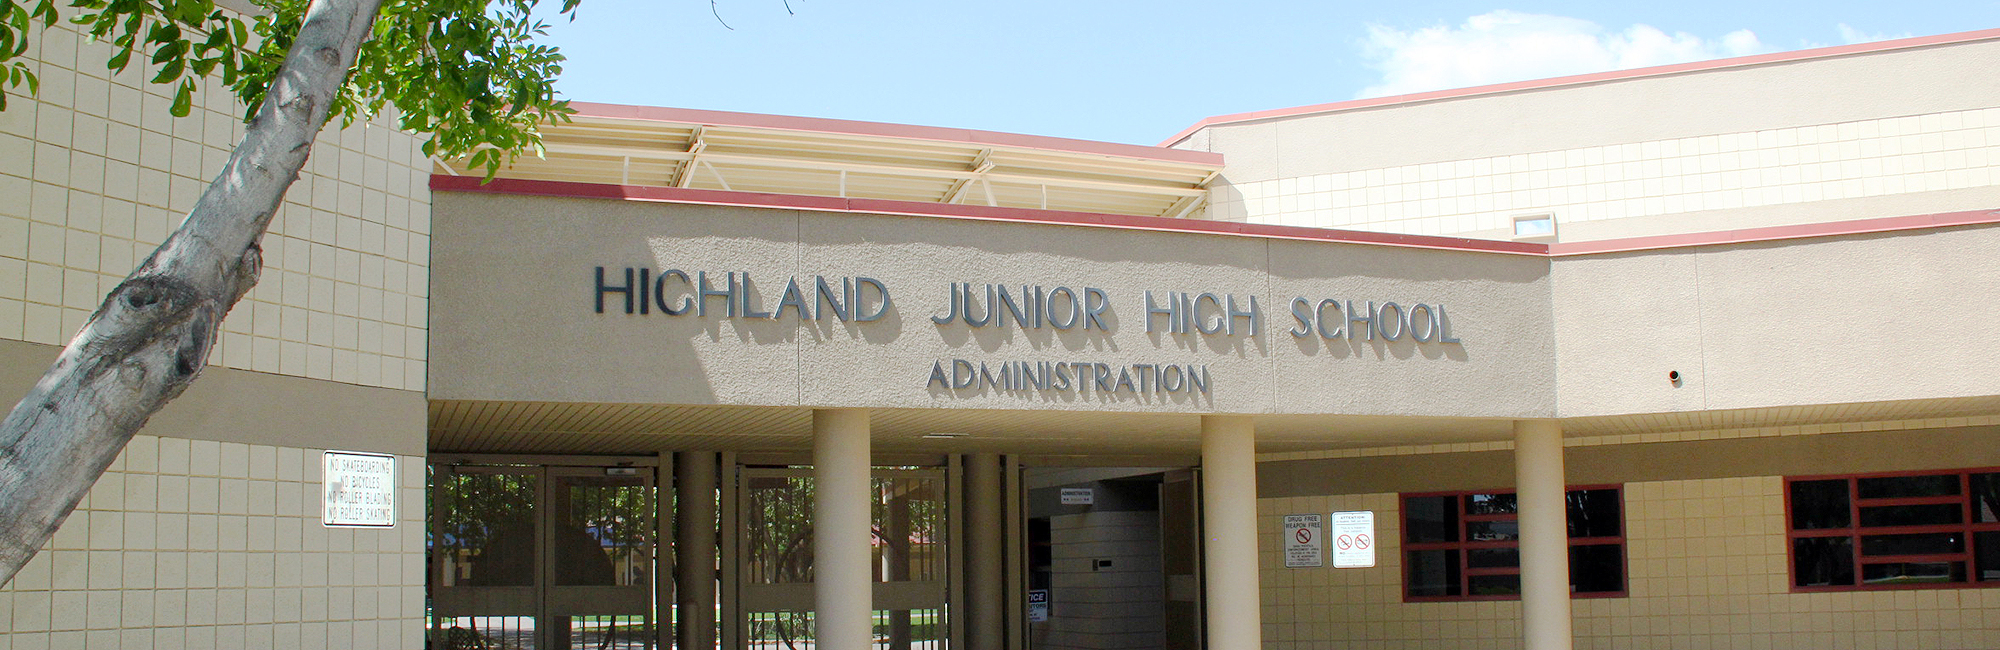 HIGHLAND JR HIGH